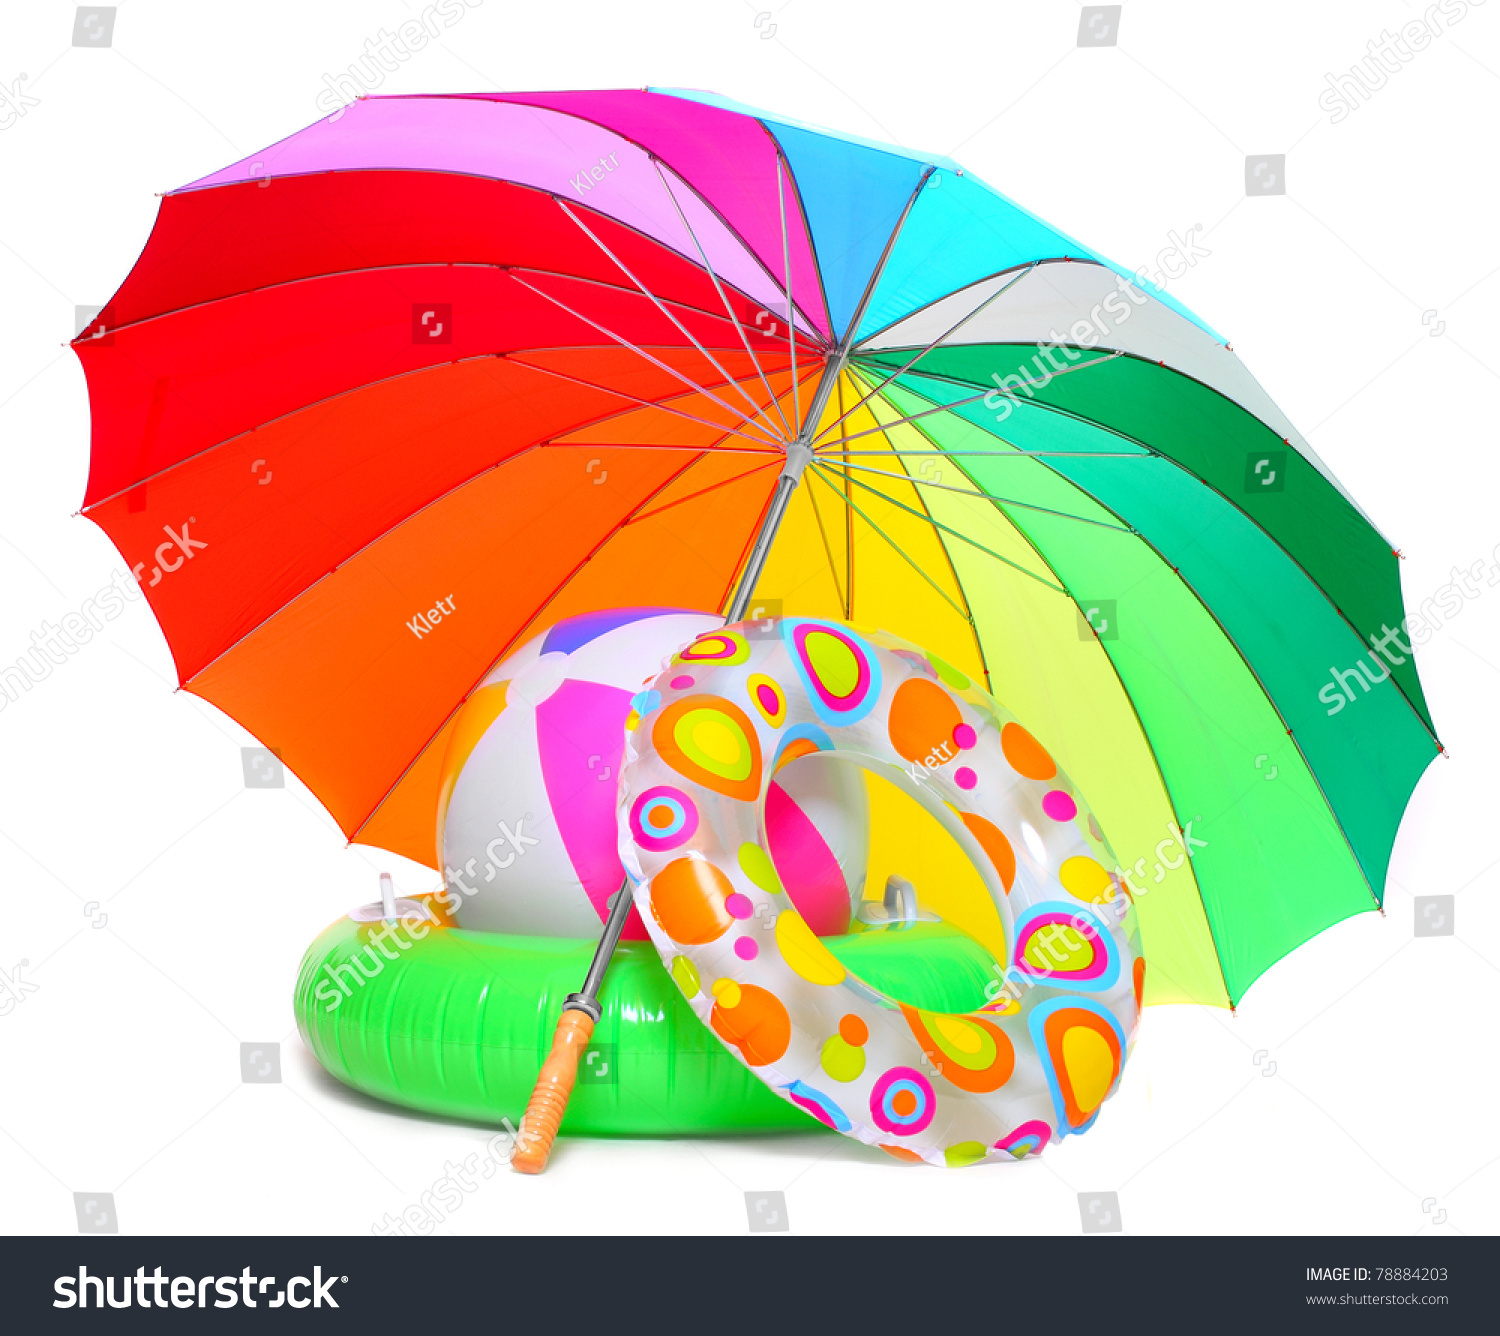 Floating Water Toys And Beach Umbrella Isolated On White